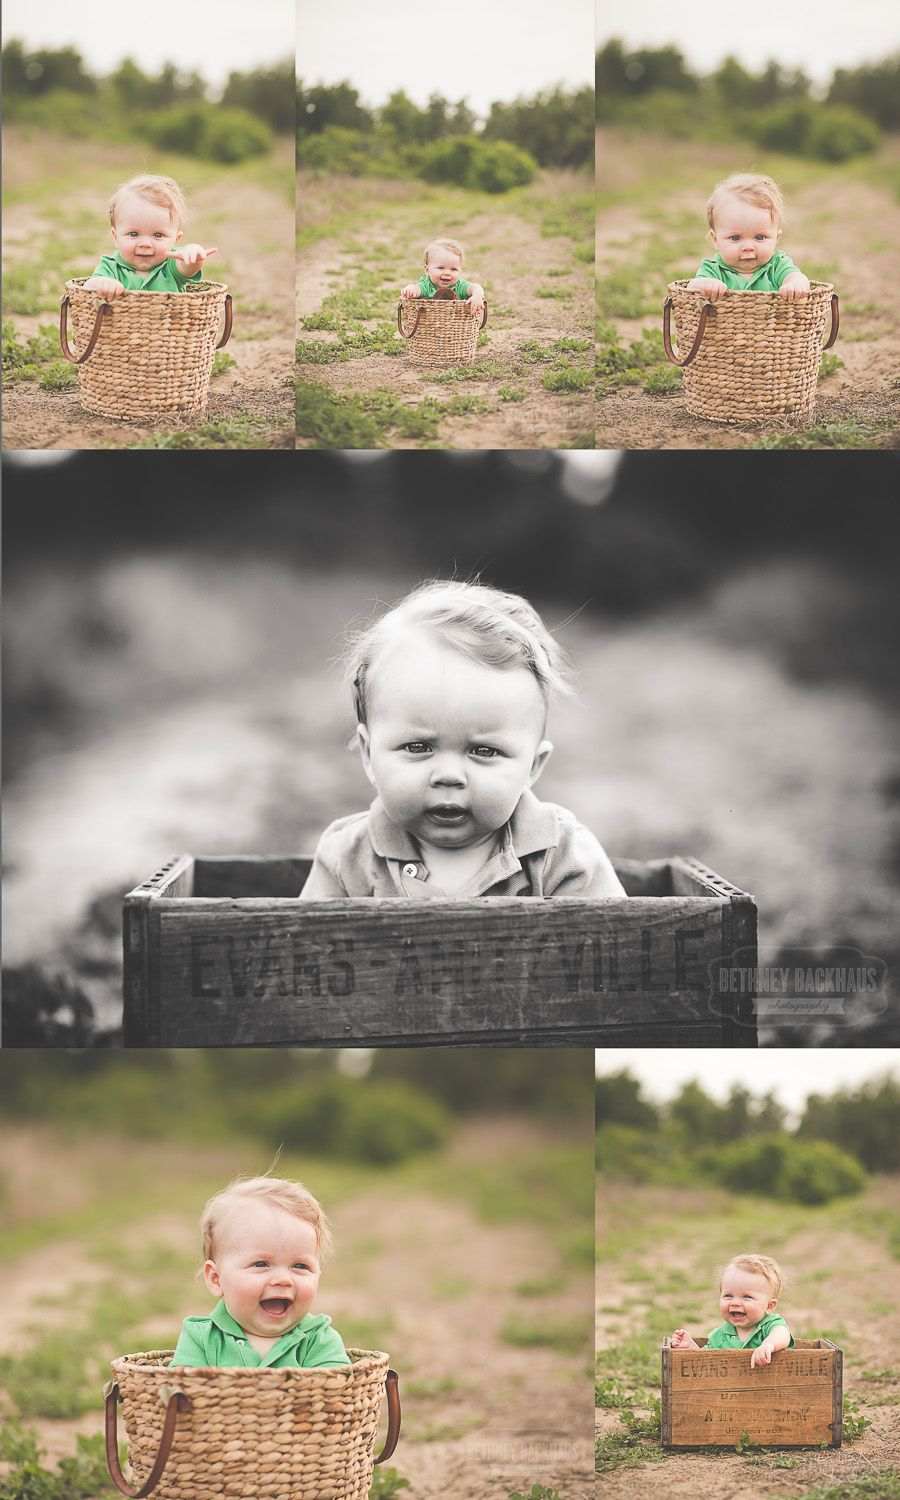 Bethney backhaus photography 6 month session mount dora photographer find this pin and more on safari themed baby